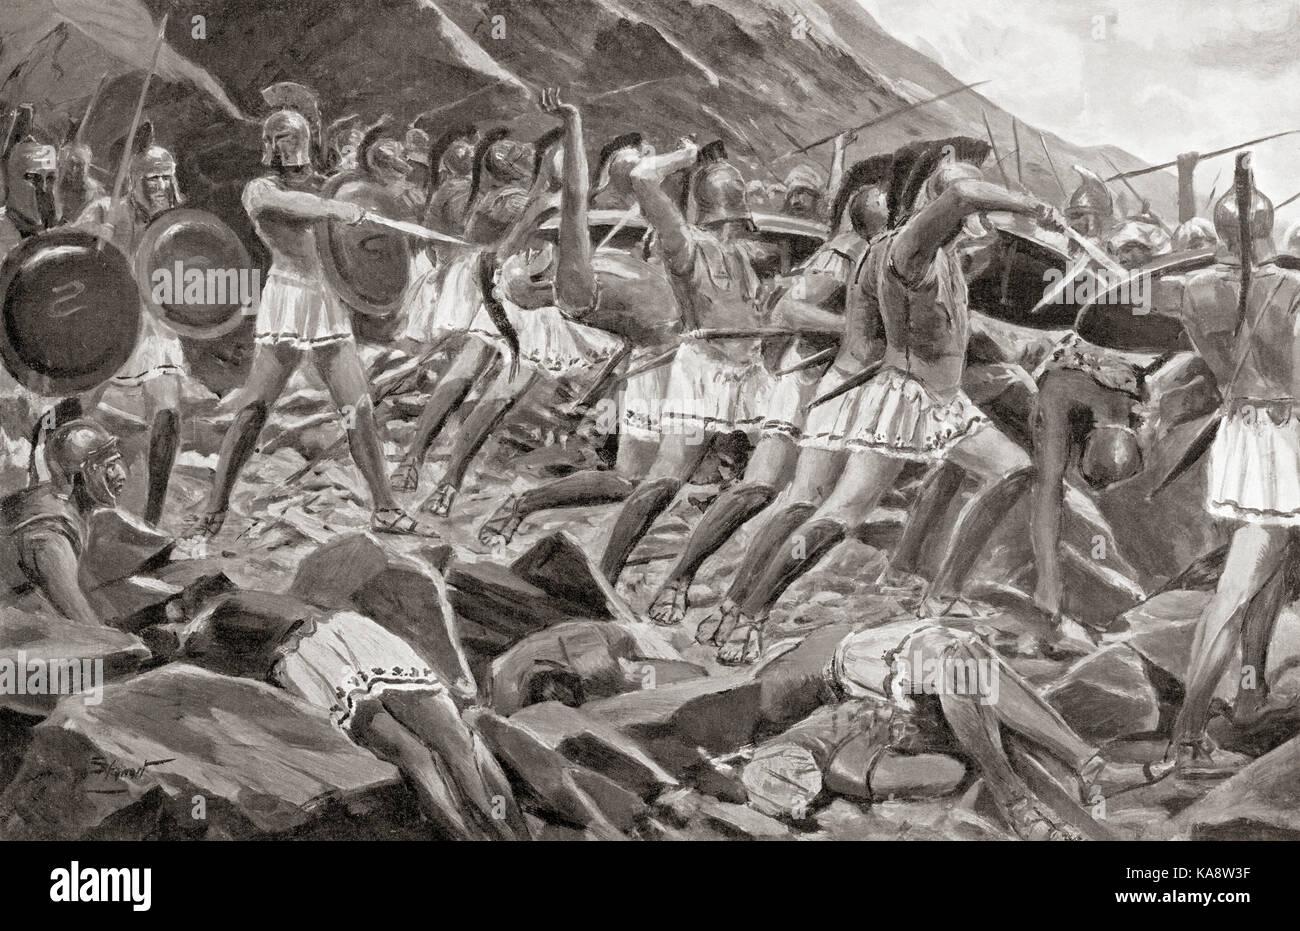 Leonidas, King of Sparta, and the Three Hundred at the Battle of Thermopylae, 480 BC.  After the painting by Allan Stock Photo